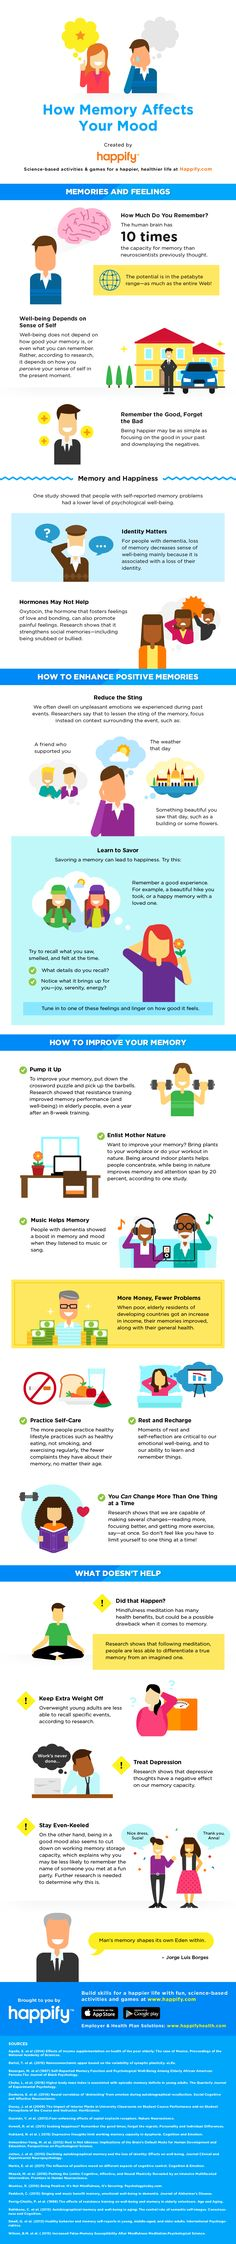 memory and mood infographic